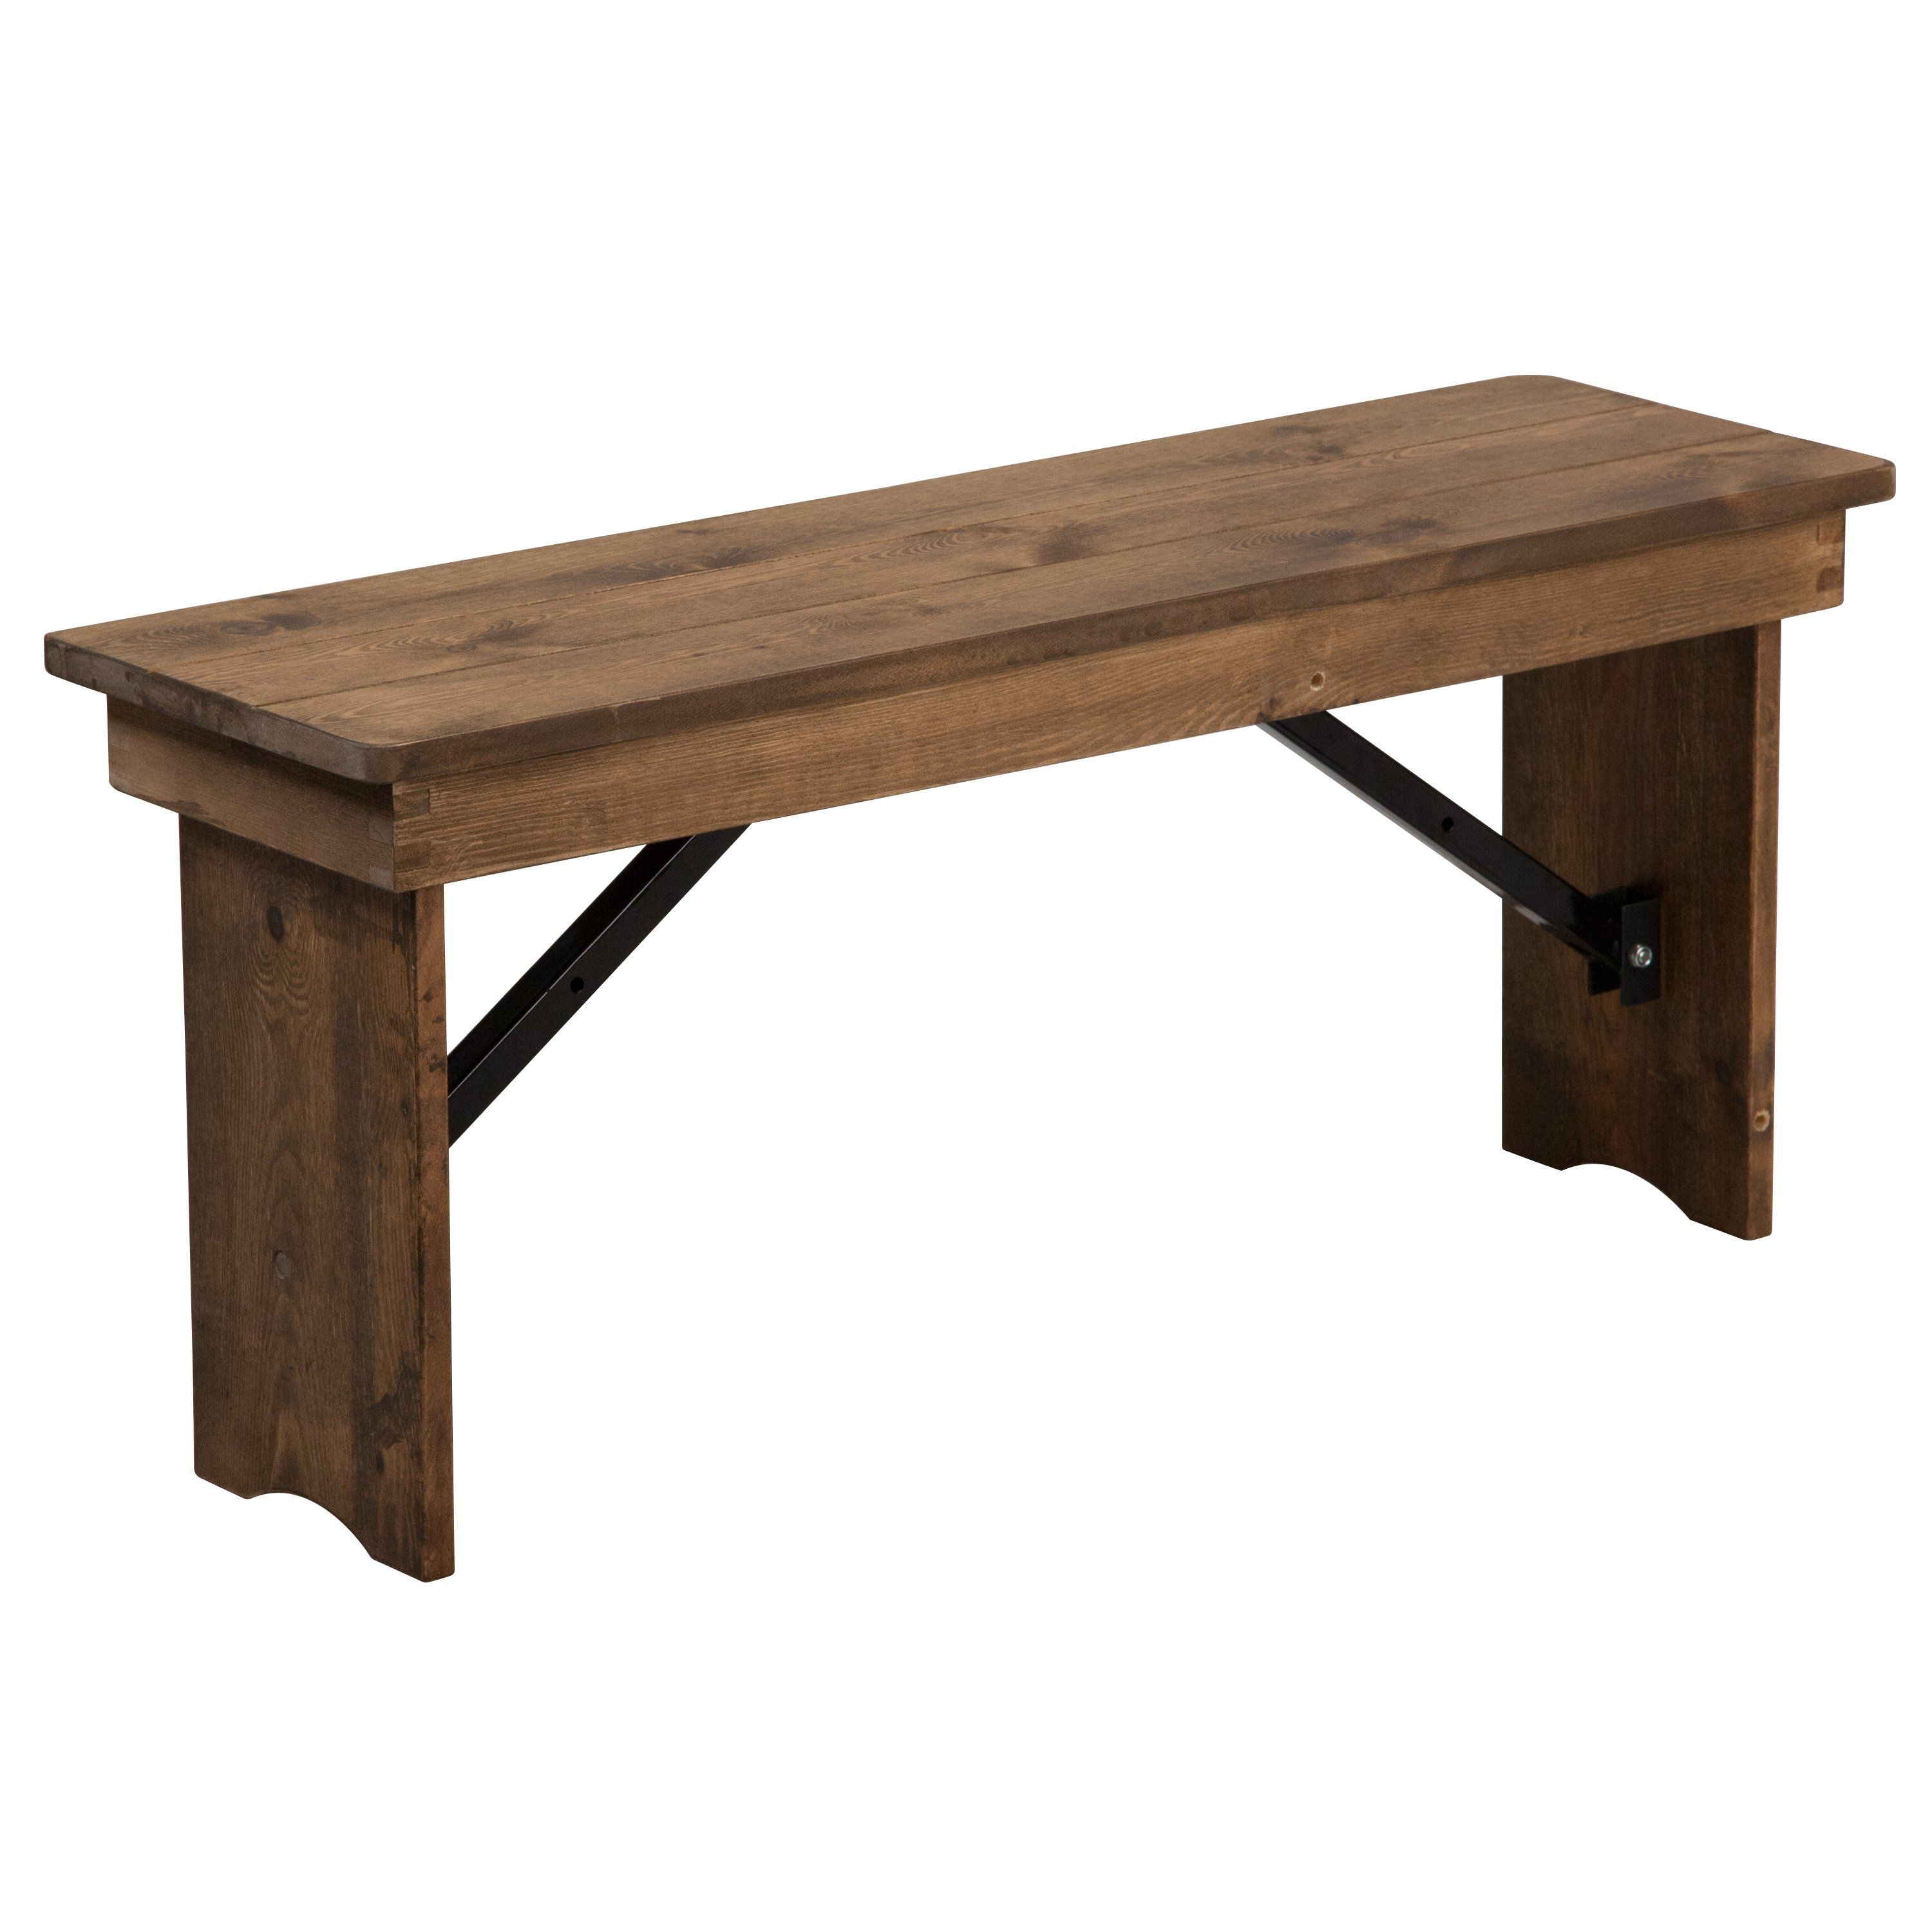 Hercules Series 40 X 12 Solid Pine Folding Farm Bench Farmhouse Table With Bench Folding Bench Flash Furniture